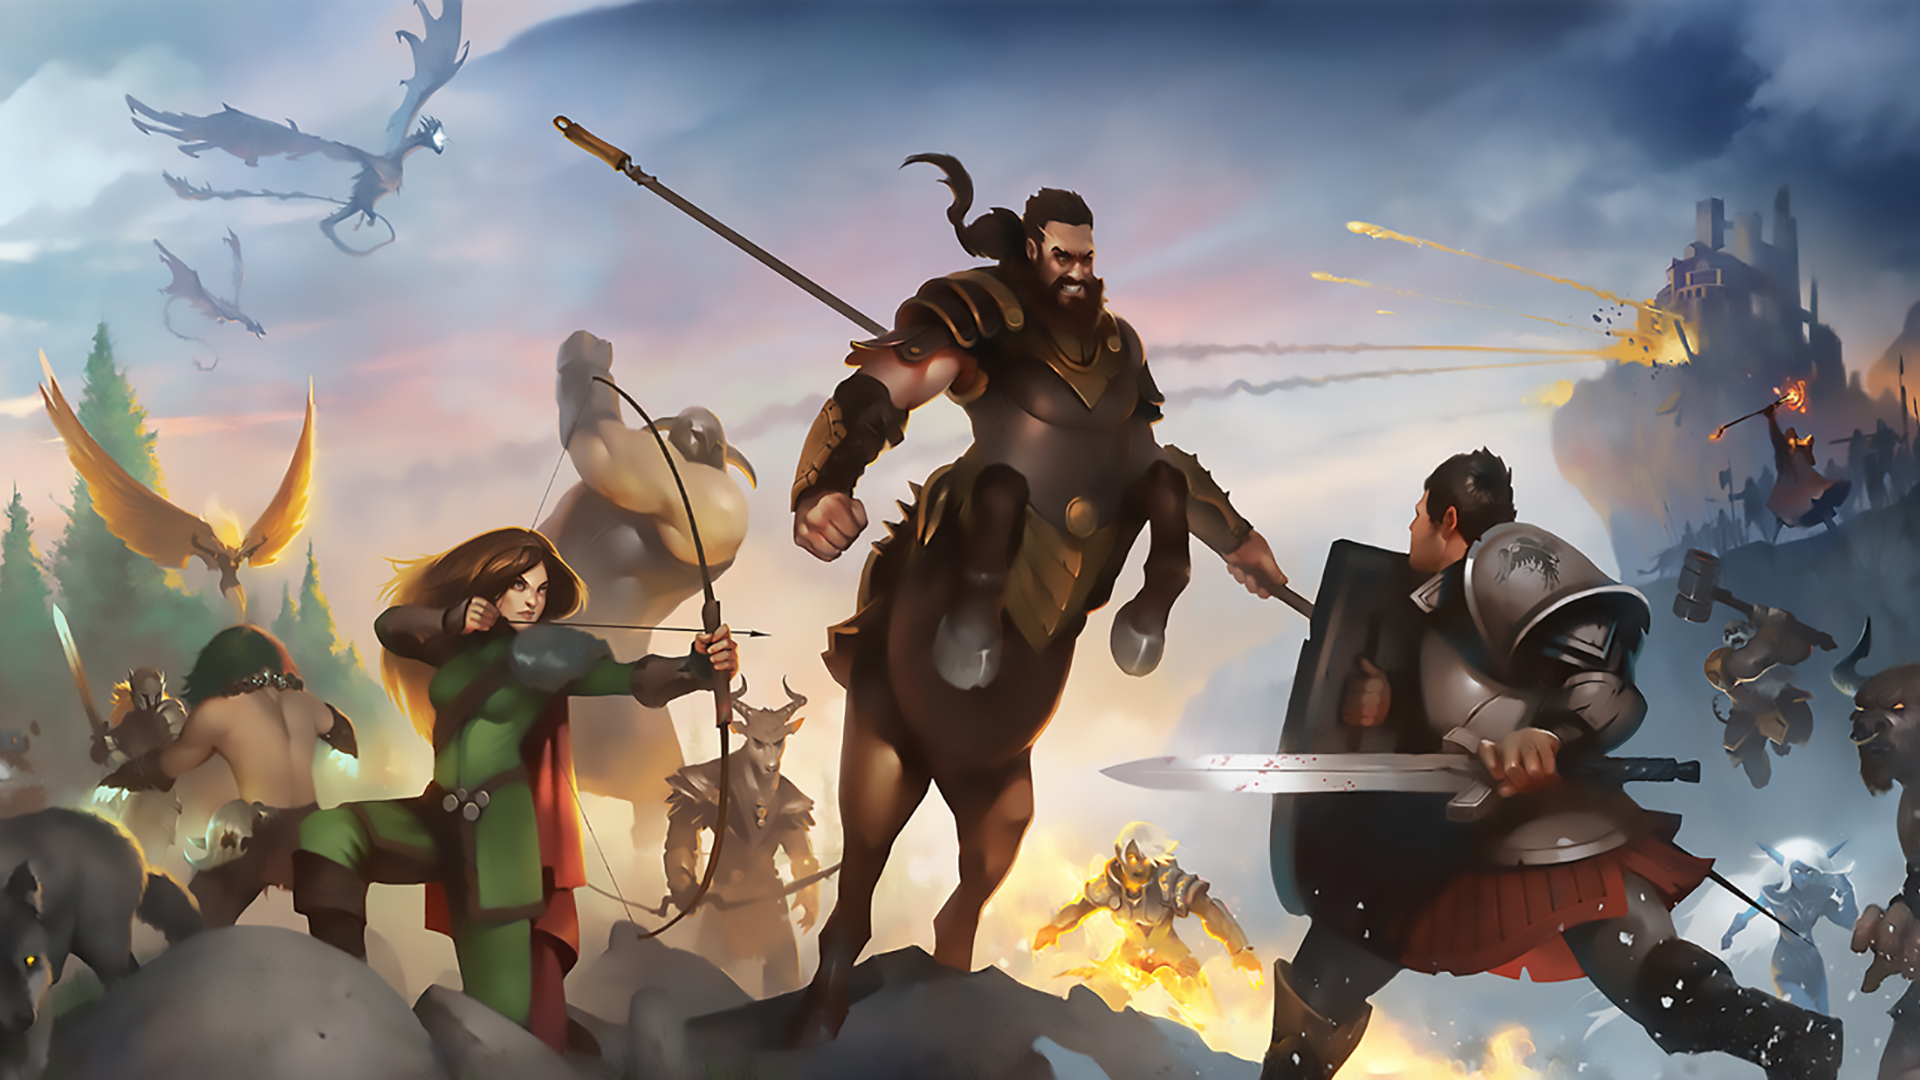 How Crowfall is trying to redefine open world PvP in MMOs